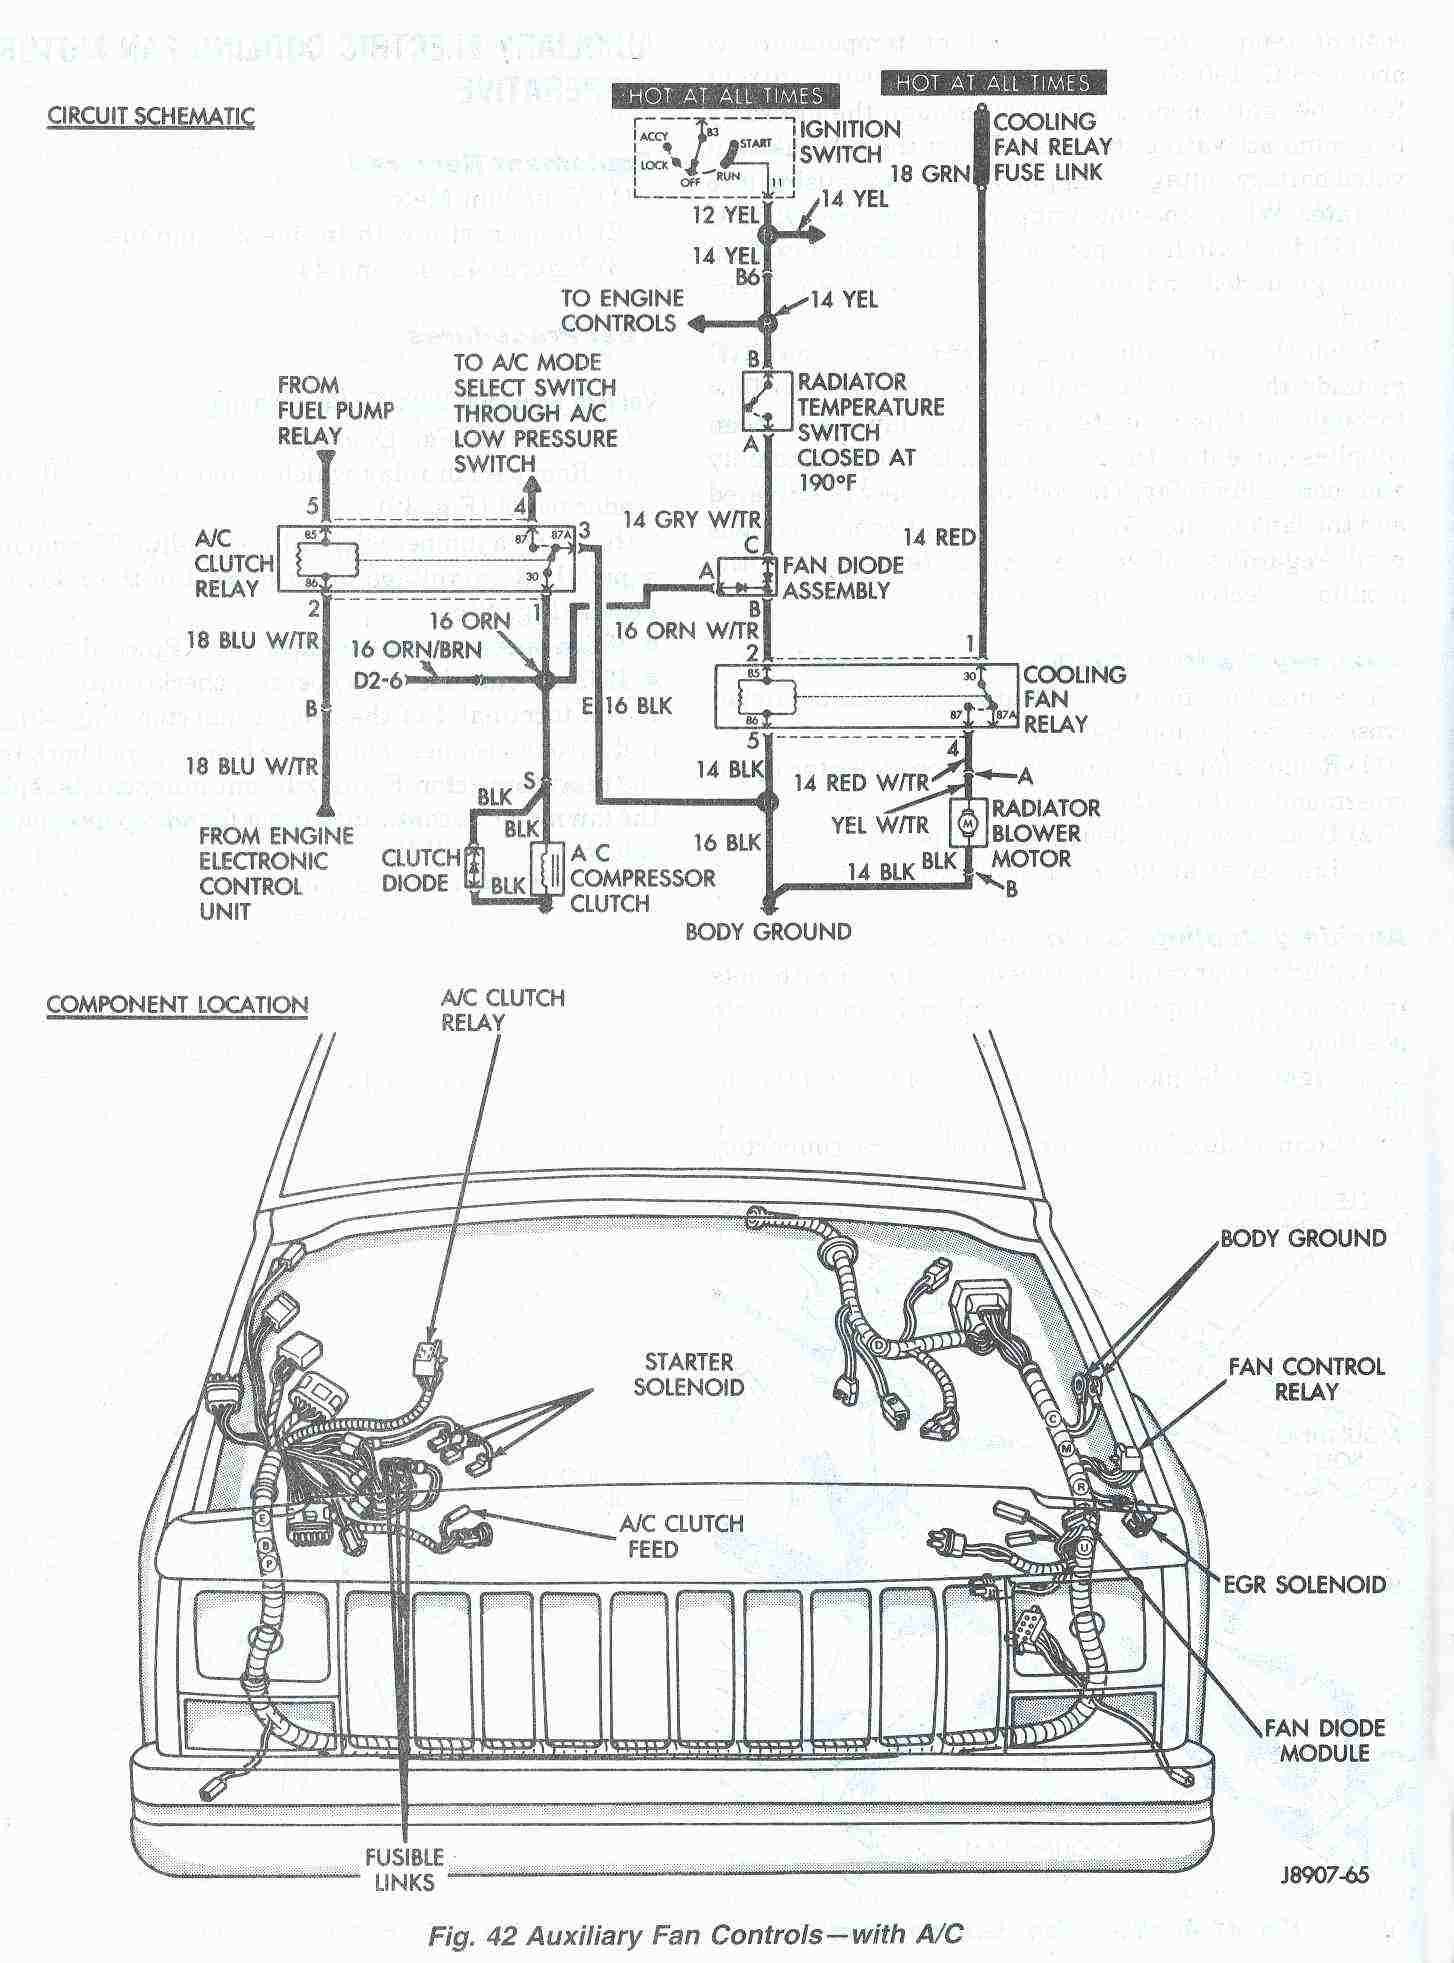 87 jeep cherokee wiring diagram on lights jeep cherokee online 87 jeep cherokee wiring diagram on lights jeep cherokee online manual ideas for the house pinterest cherokee jeeps and jeep cherokee xj asfbconference2016 Image collections